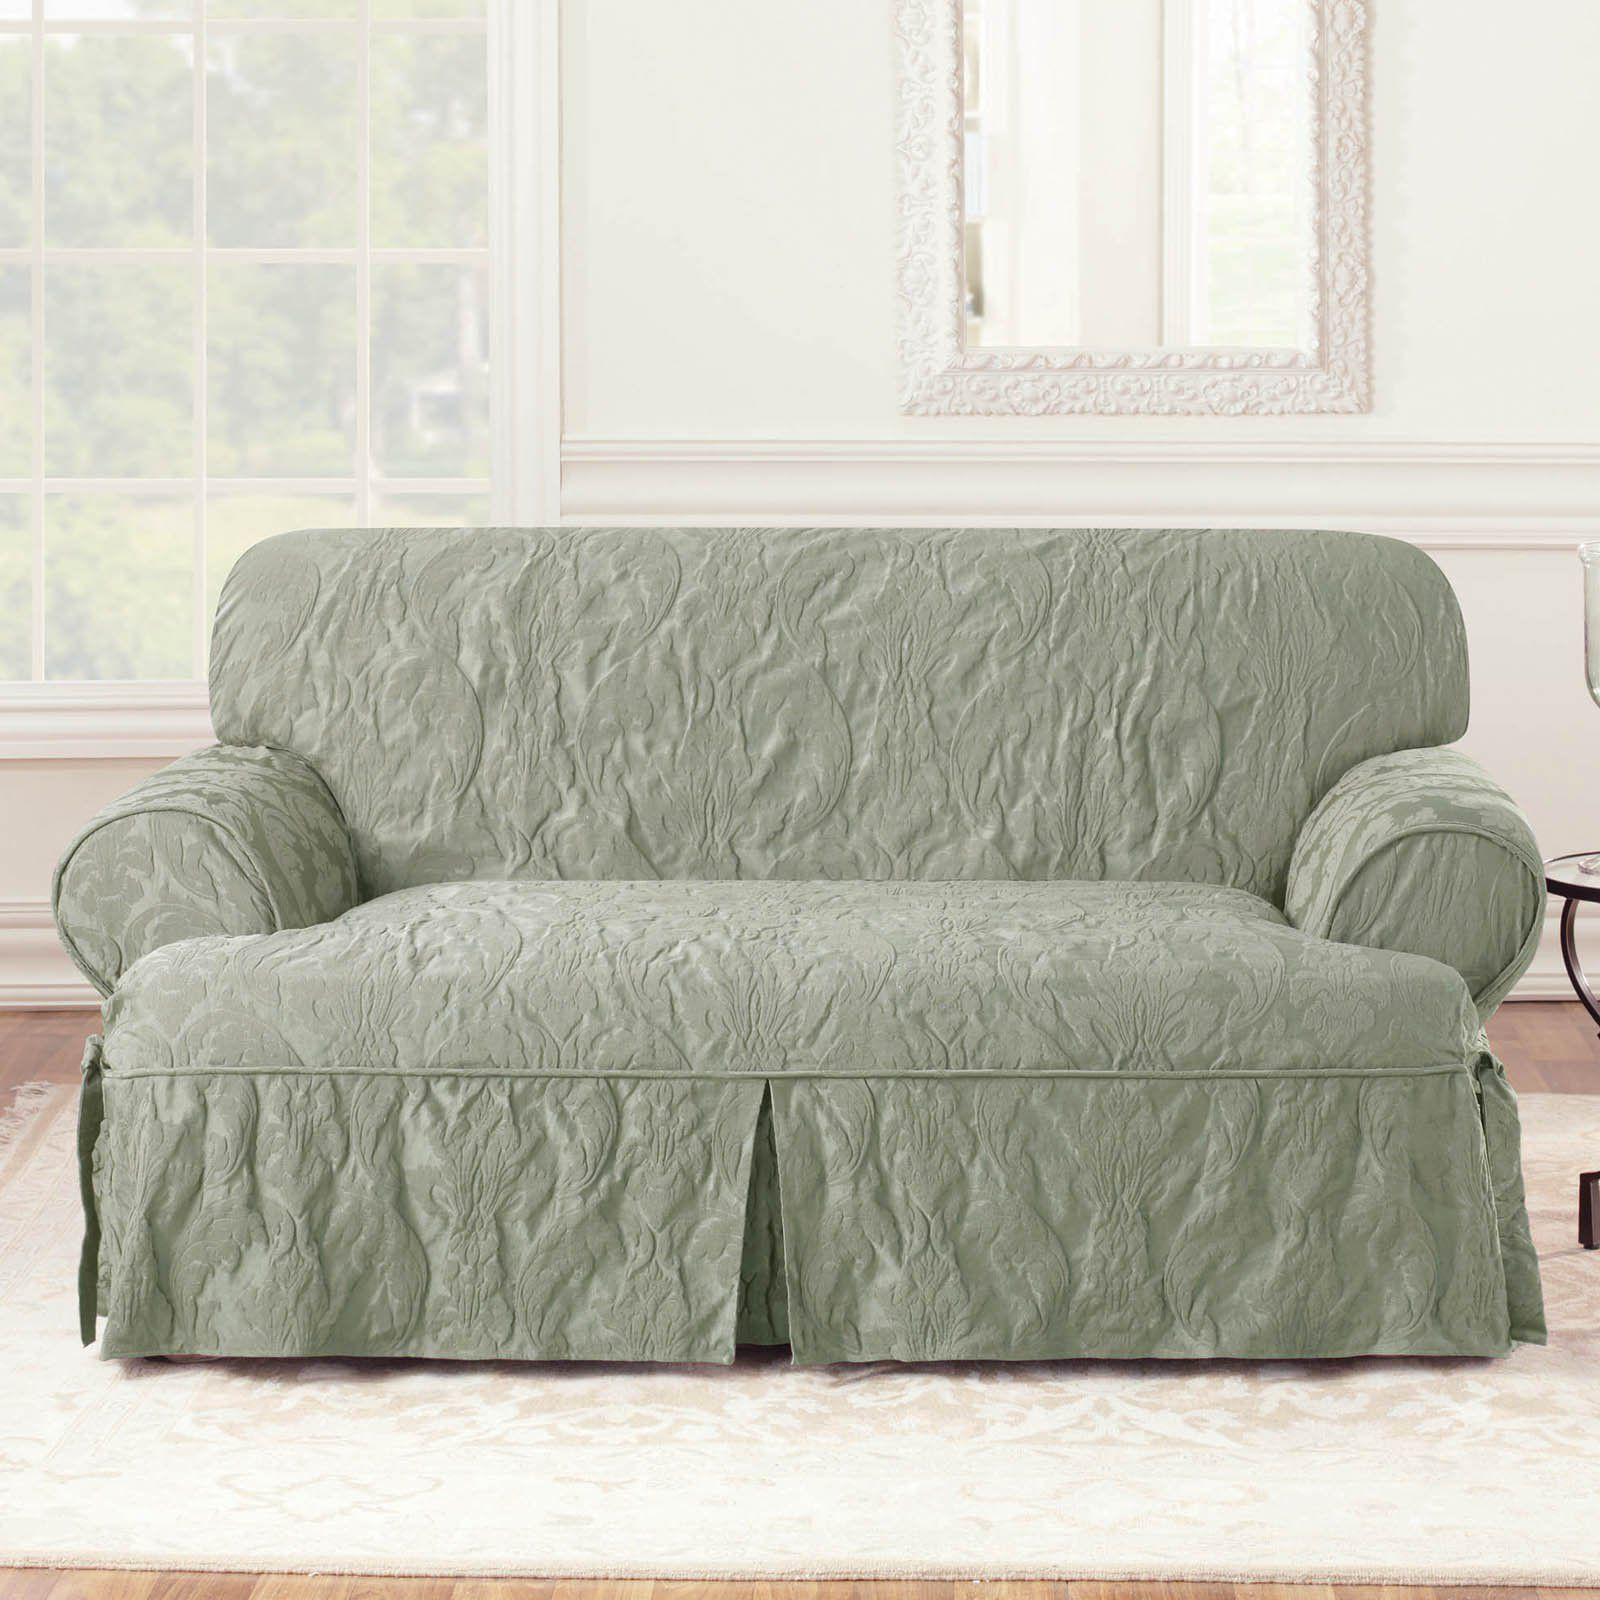 Sure Fit Matelasse Damask T-Cushion Loveseat Cover GOLD   NEW IN PACKAGE